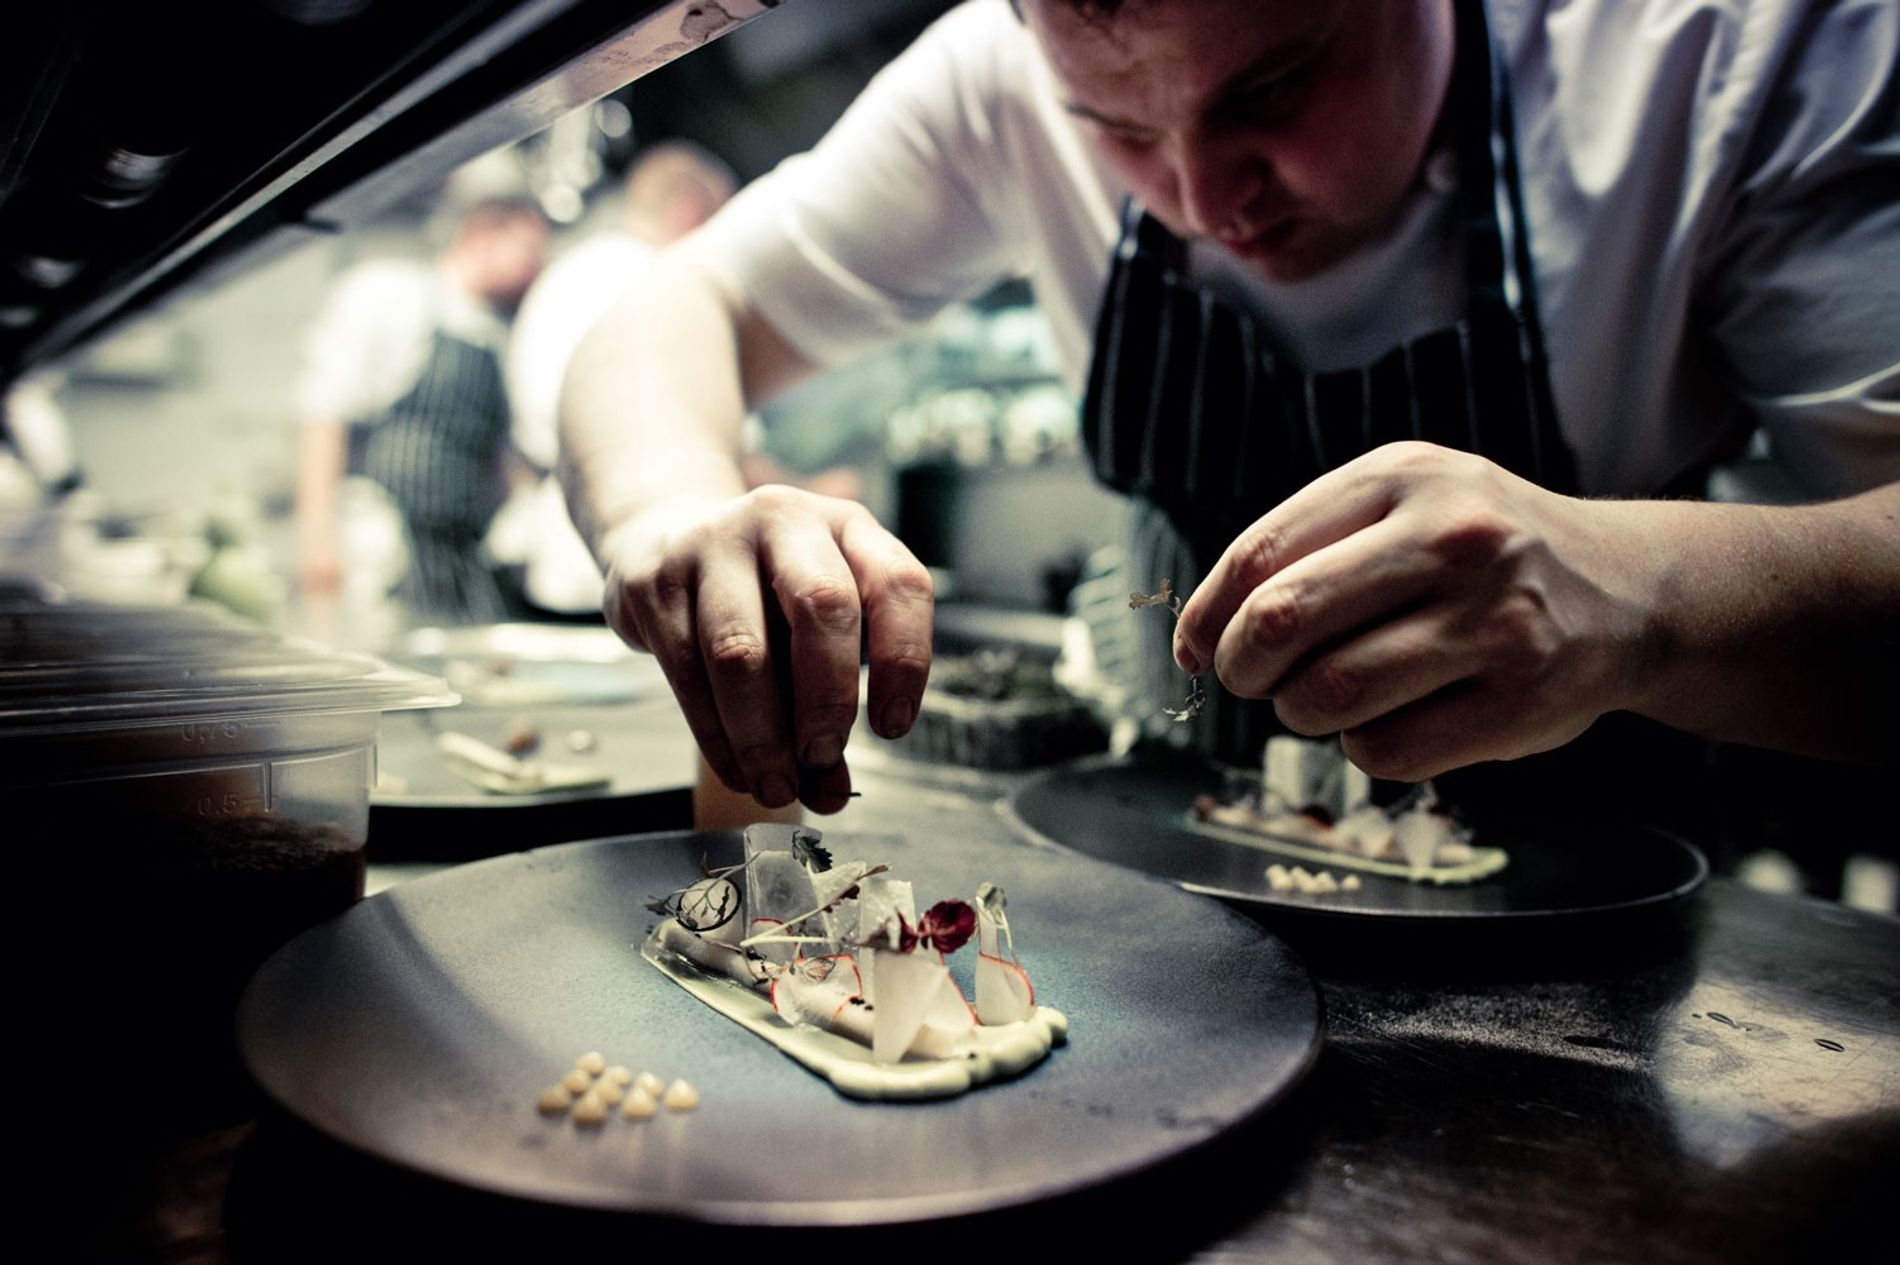 Chef plates up at The Greenhouse restaurant, Dublin